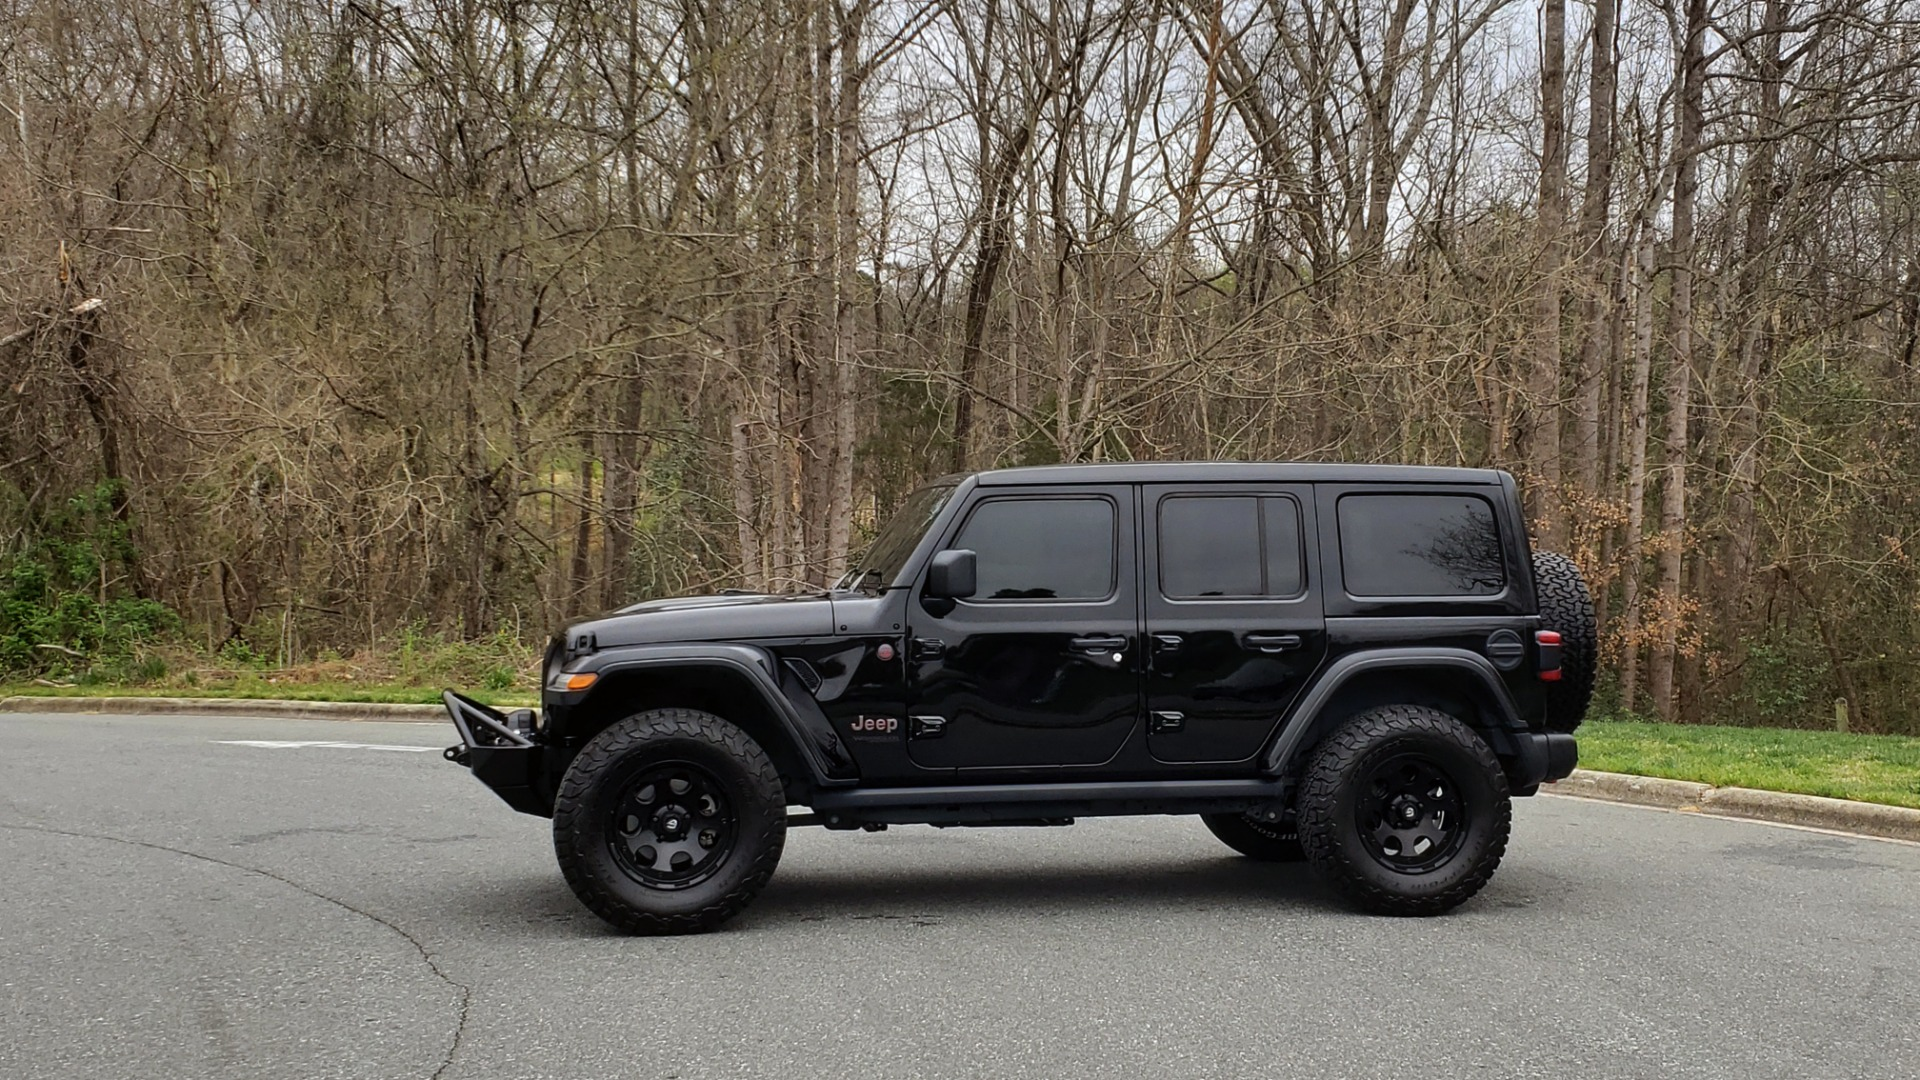 Used 2019 Jeep WRANGLER UNLIMITED RUBICON 4WD / V6 / 8-SPD AUTO / NAV / PWR TOP / REARVIEW for sale Sold at Formula Imports in Charlotte NC 28227 4